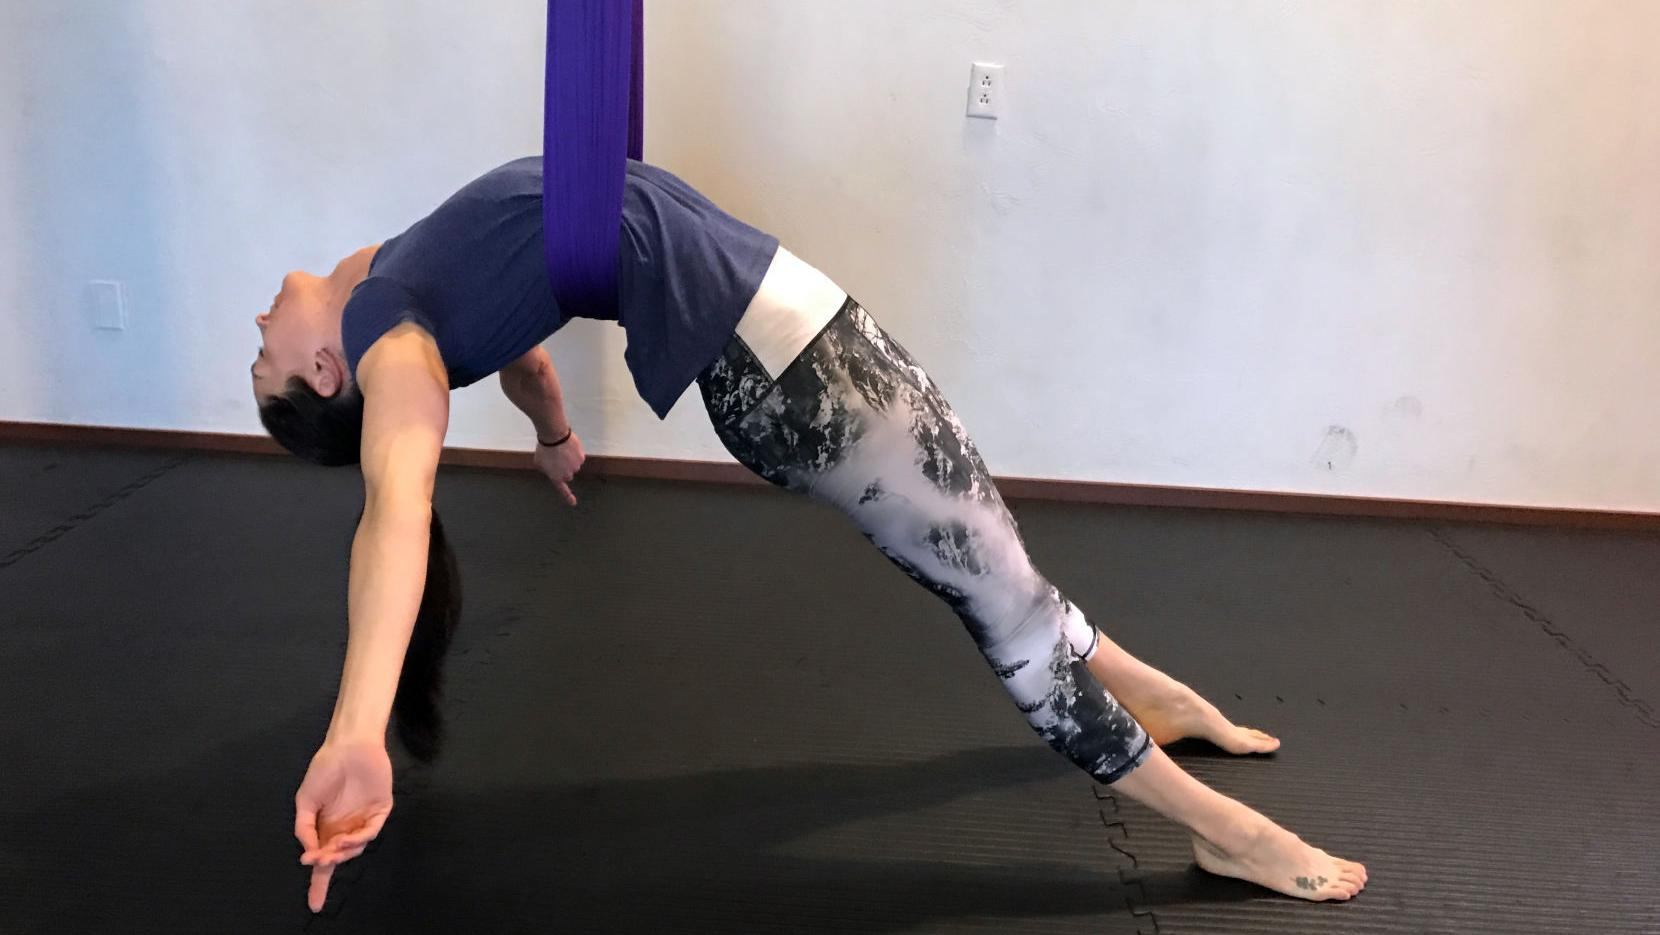 We tried an aerial fitness class and it kicked our butts ...